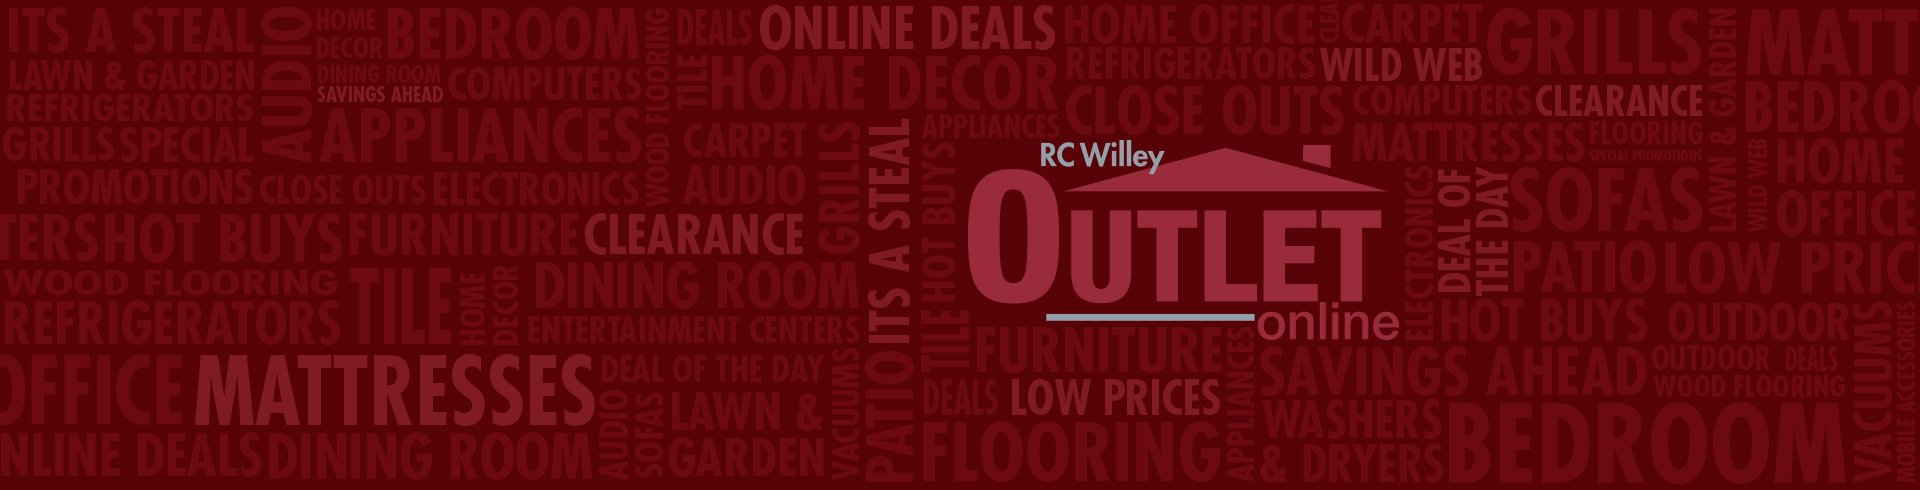 RC Willey Outlet Logo